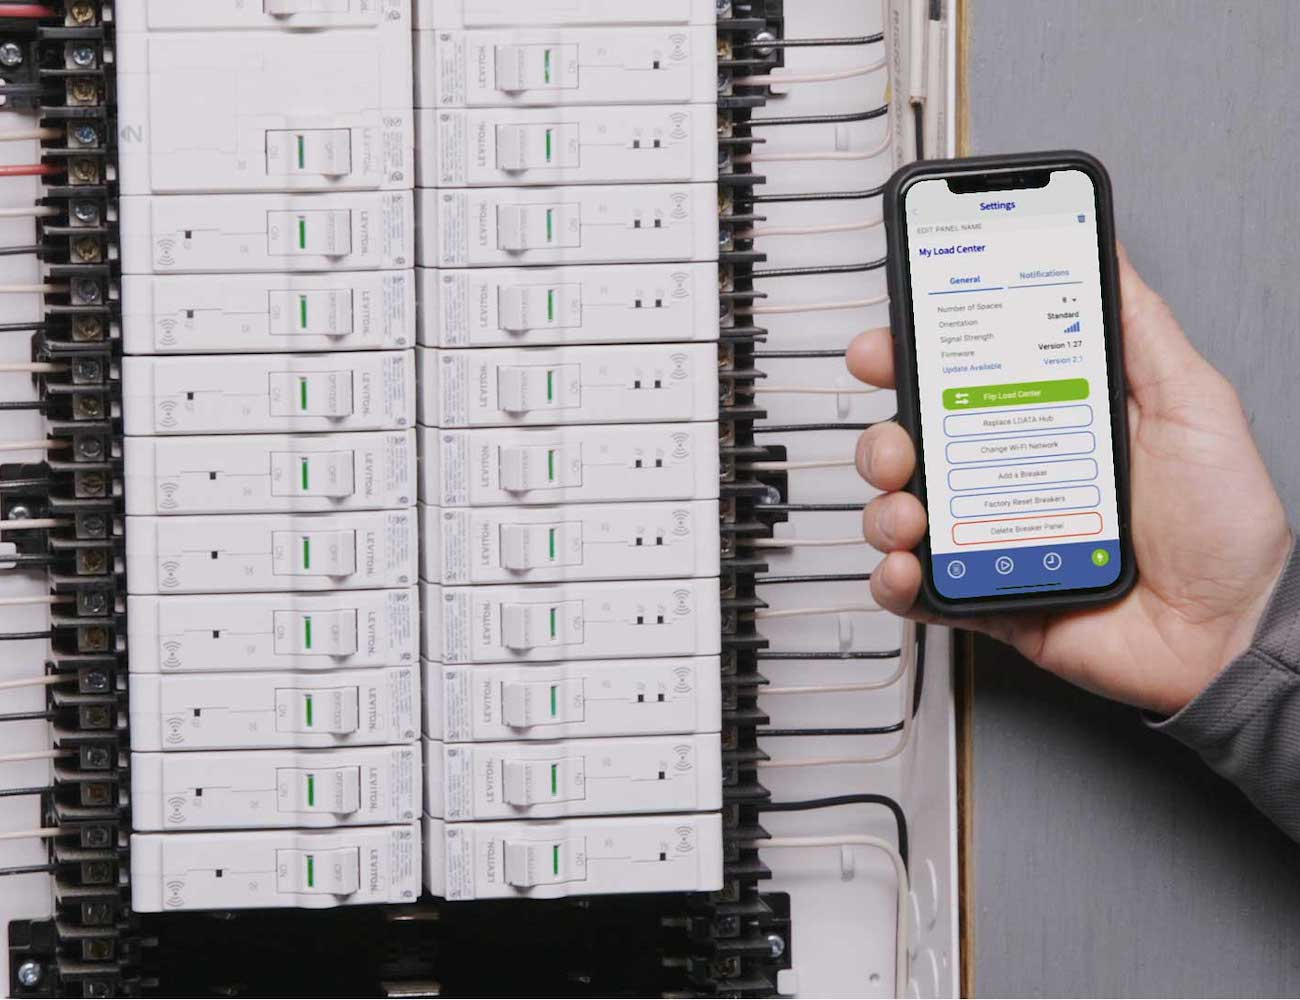 Leviton Load Center Smart Circuit Breaker monitors your electricity